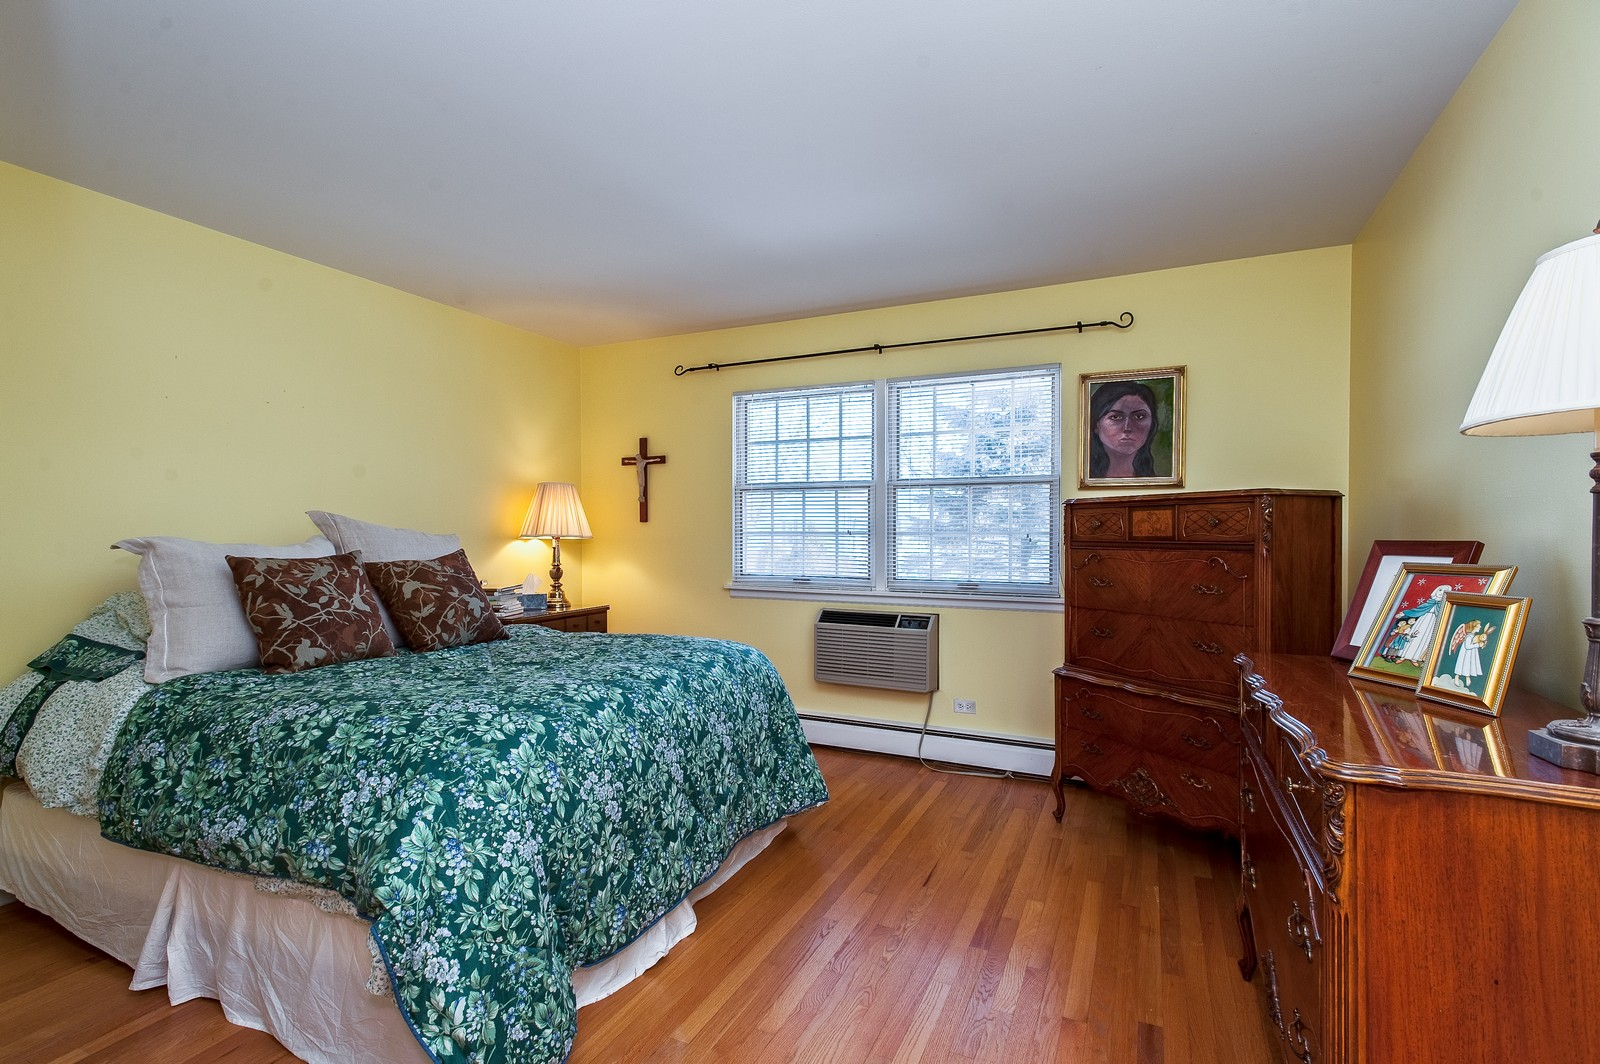 Real Estate Photography - 389 Bristol, Northfield, IL, 60093 - Master Bedroom